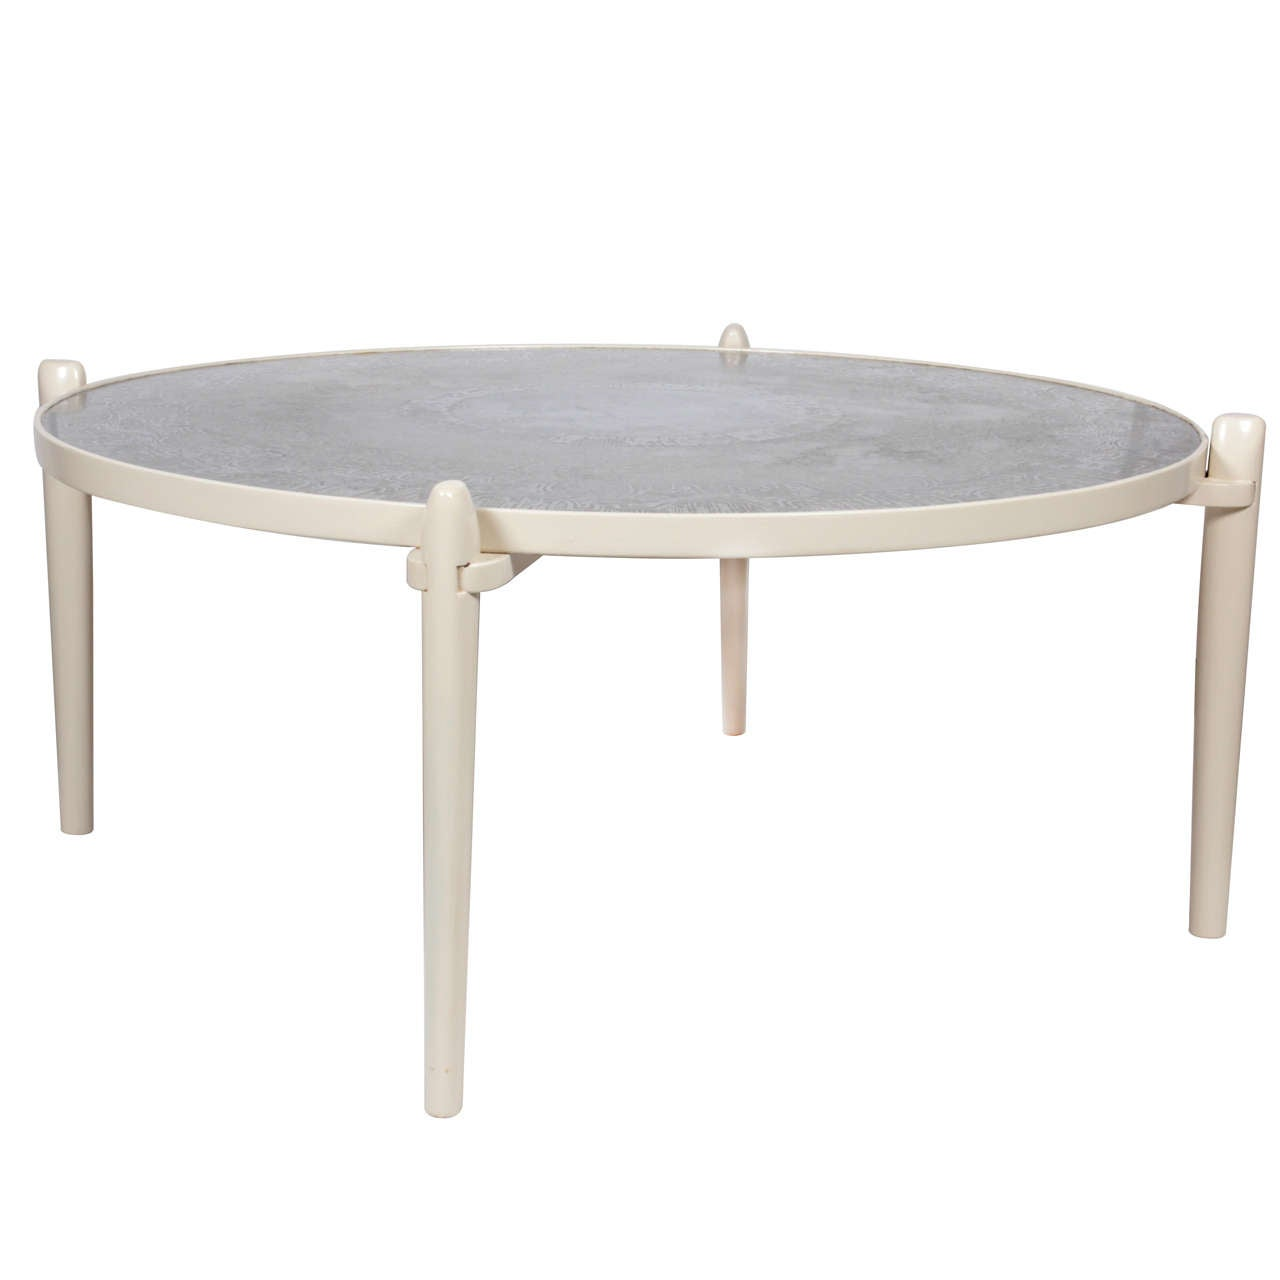 Etched Aluminum Circular Coffee Table